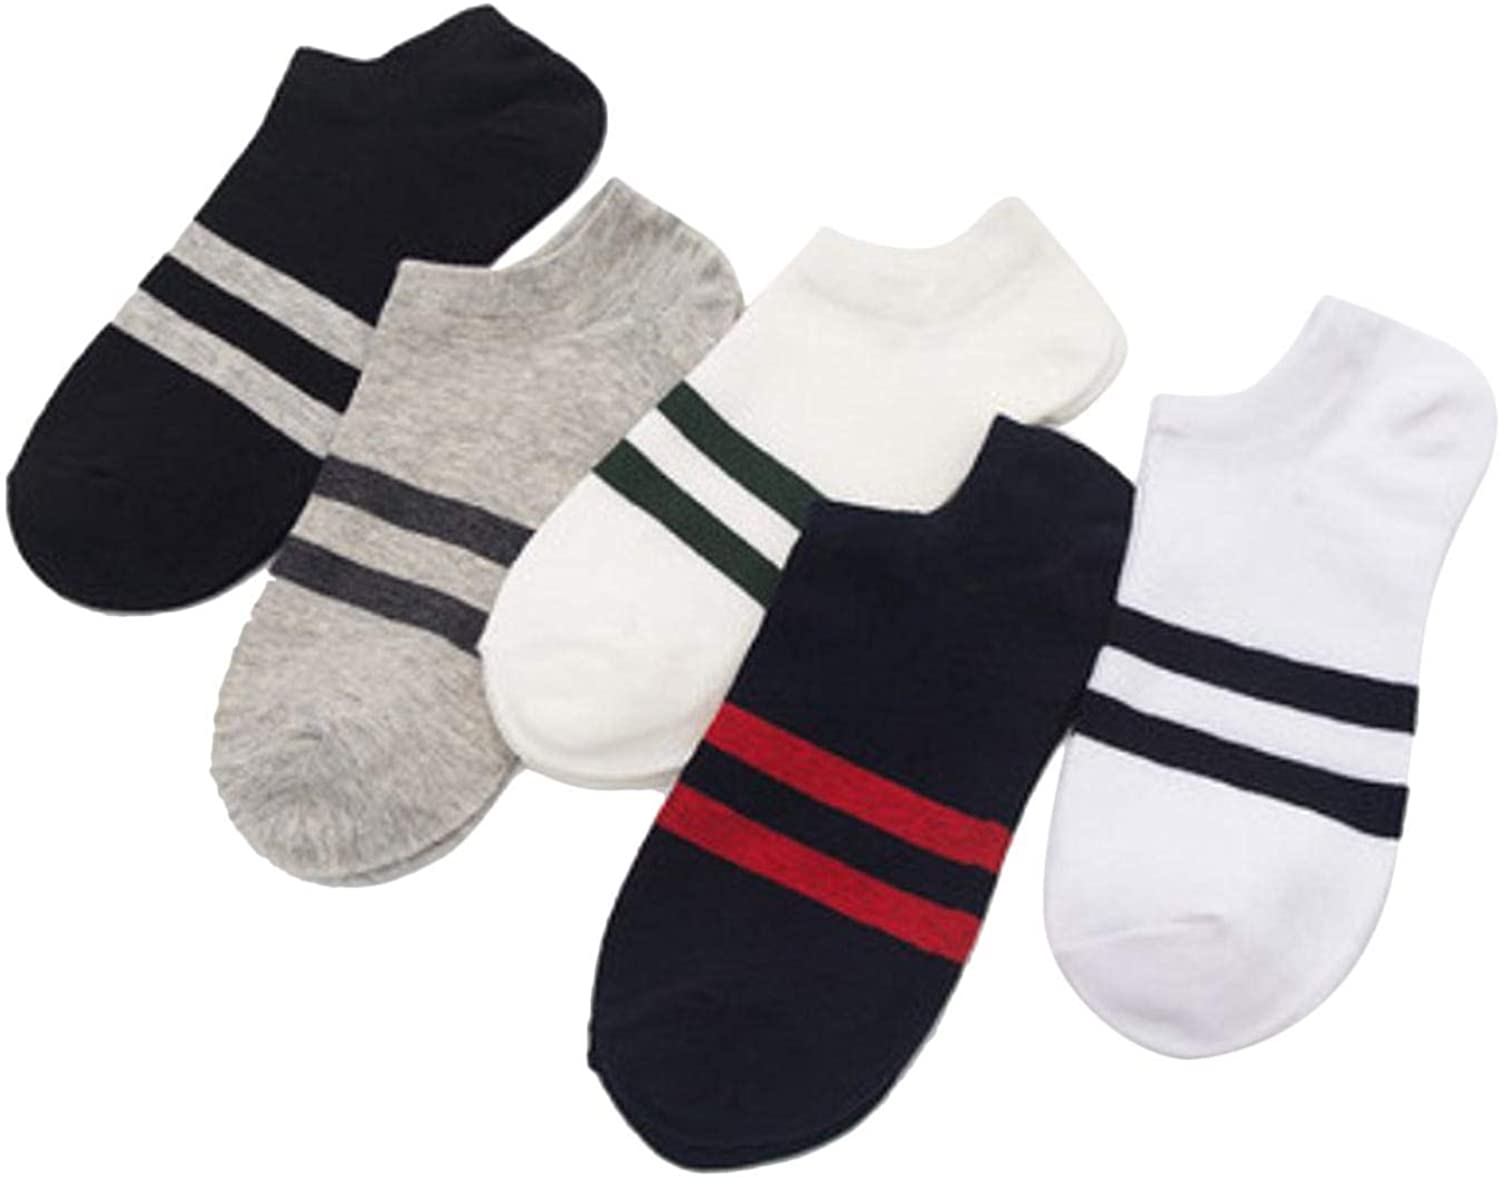 Lationay 5 Pairs Men Boys Casual Non Slip Breathable Comfortable Invisible Boat Casual Socks